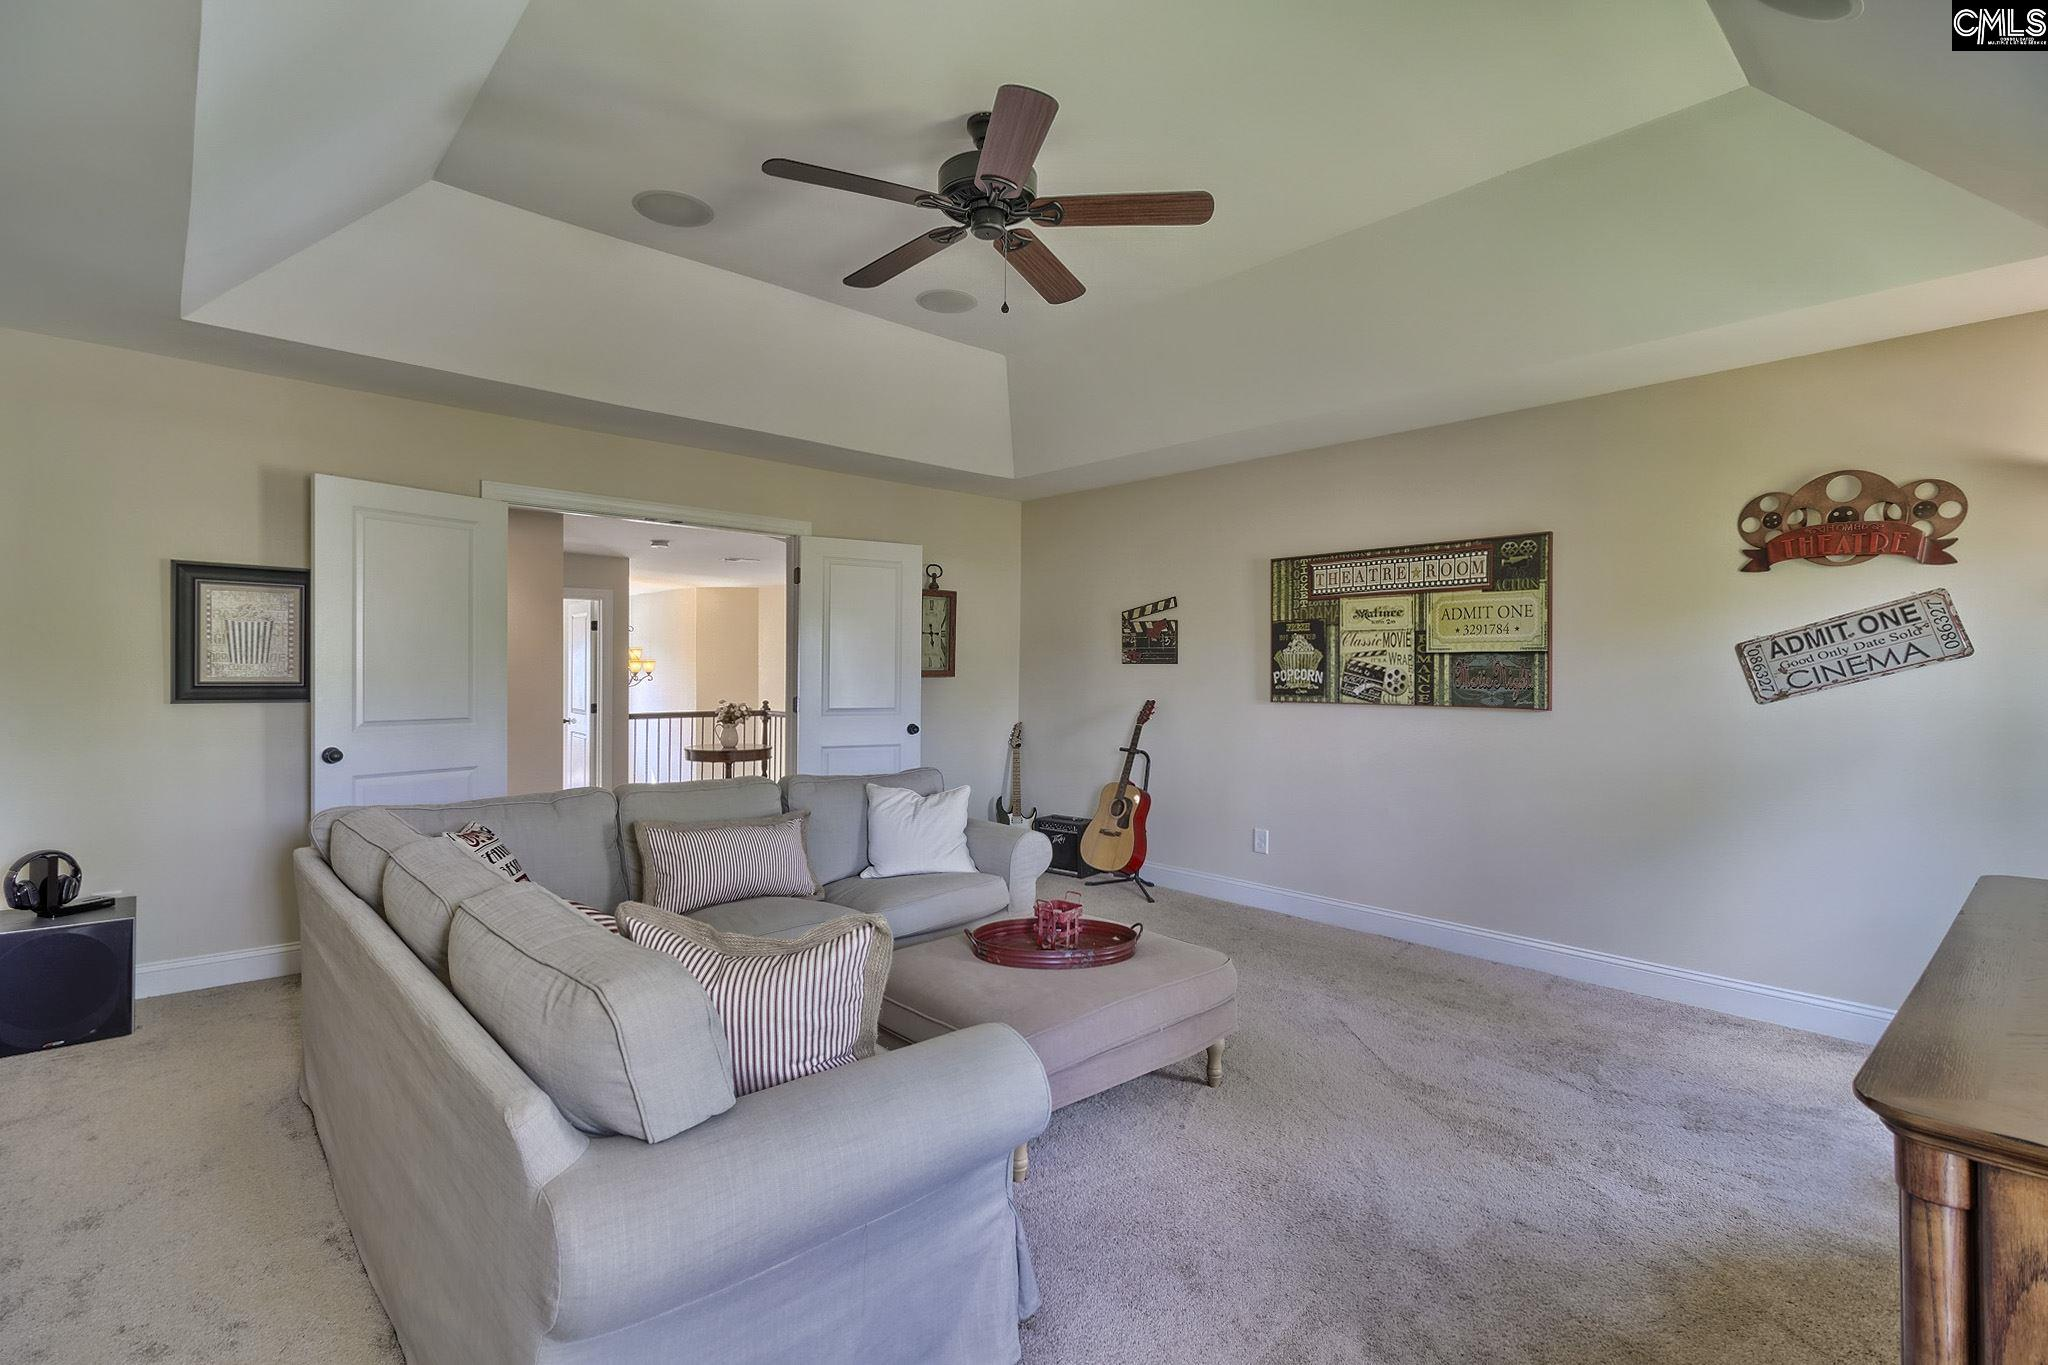 814 Indian River West Columbia, SC 29170